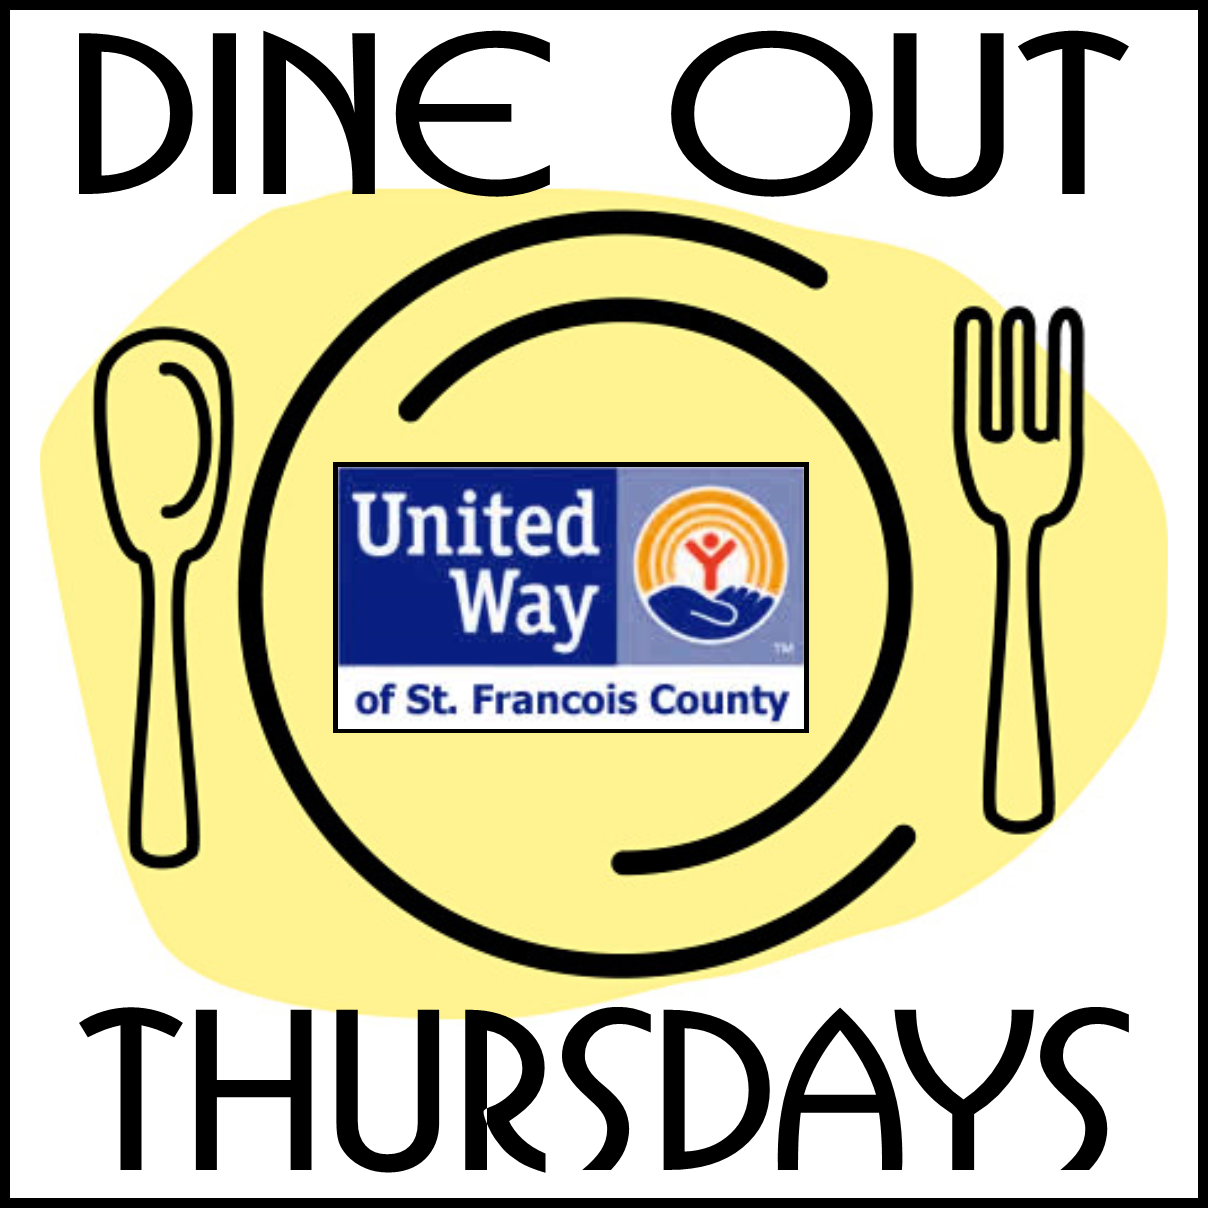 Dine Out Thursday for United Way at El Tapatio in Desloge